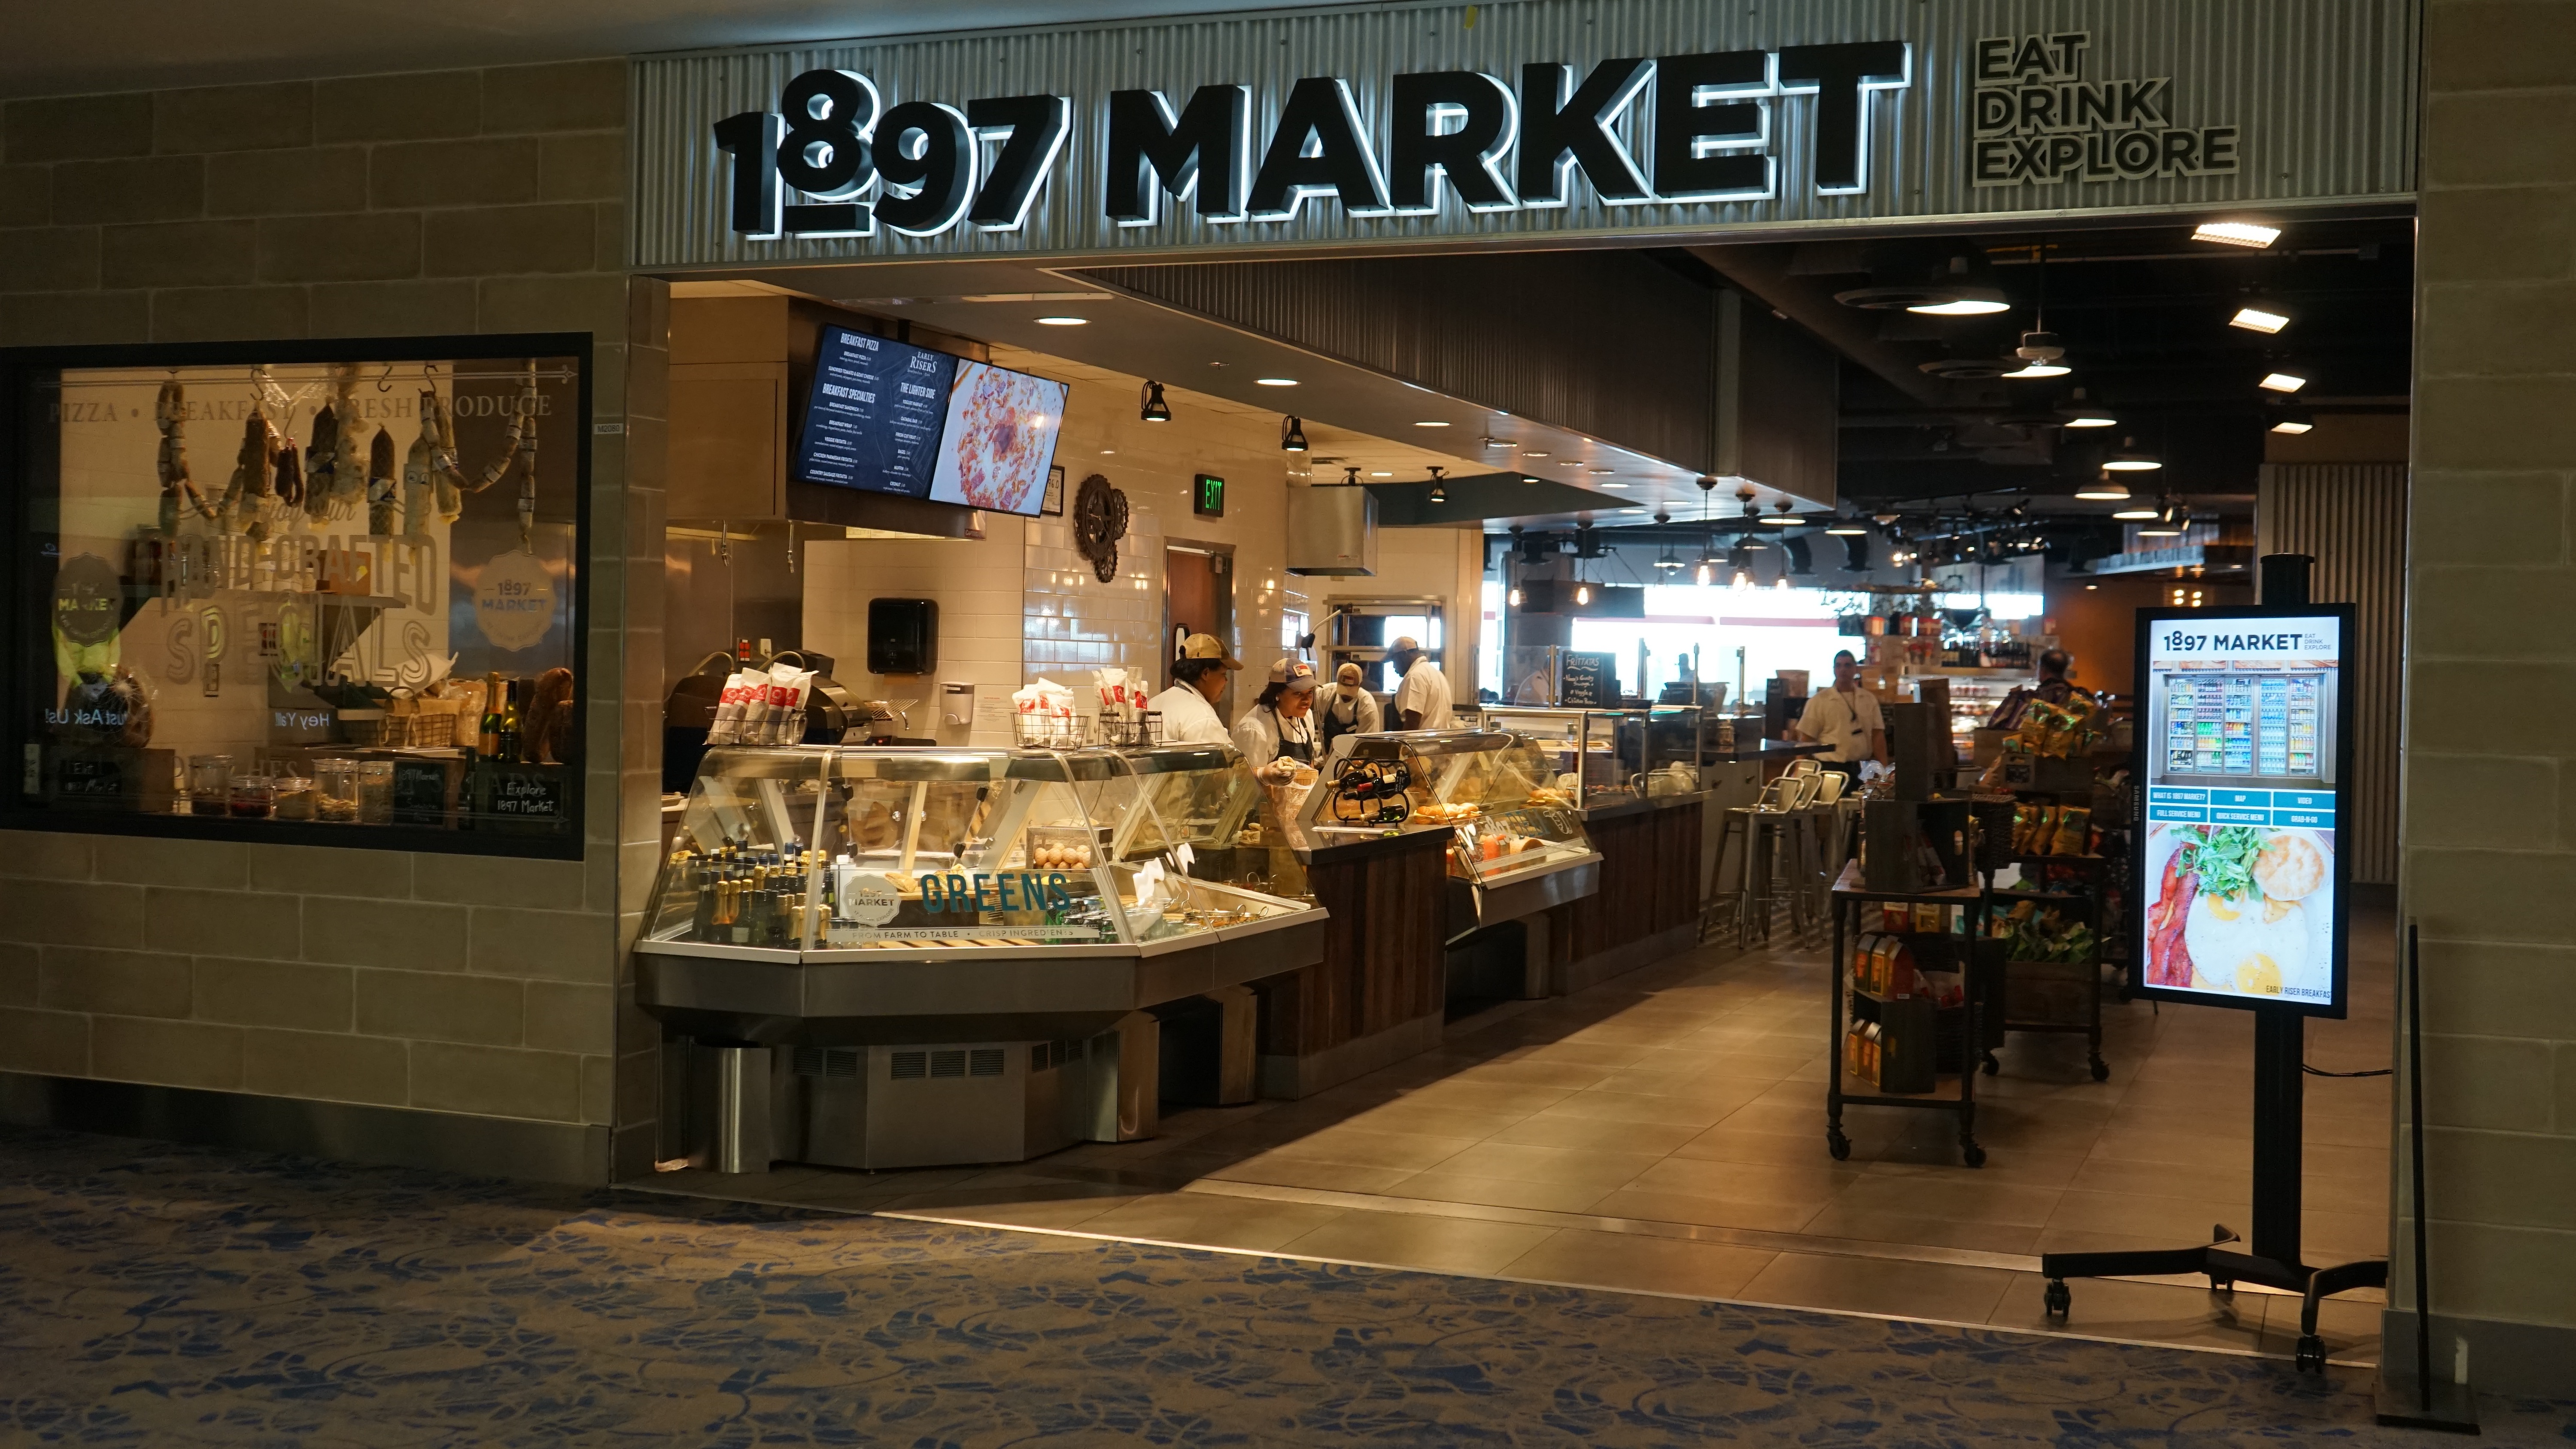 OSM Solutions provides touch screens, video wall, & menu boards for 1897 Market Charlotte Douglas International Airport